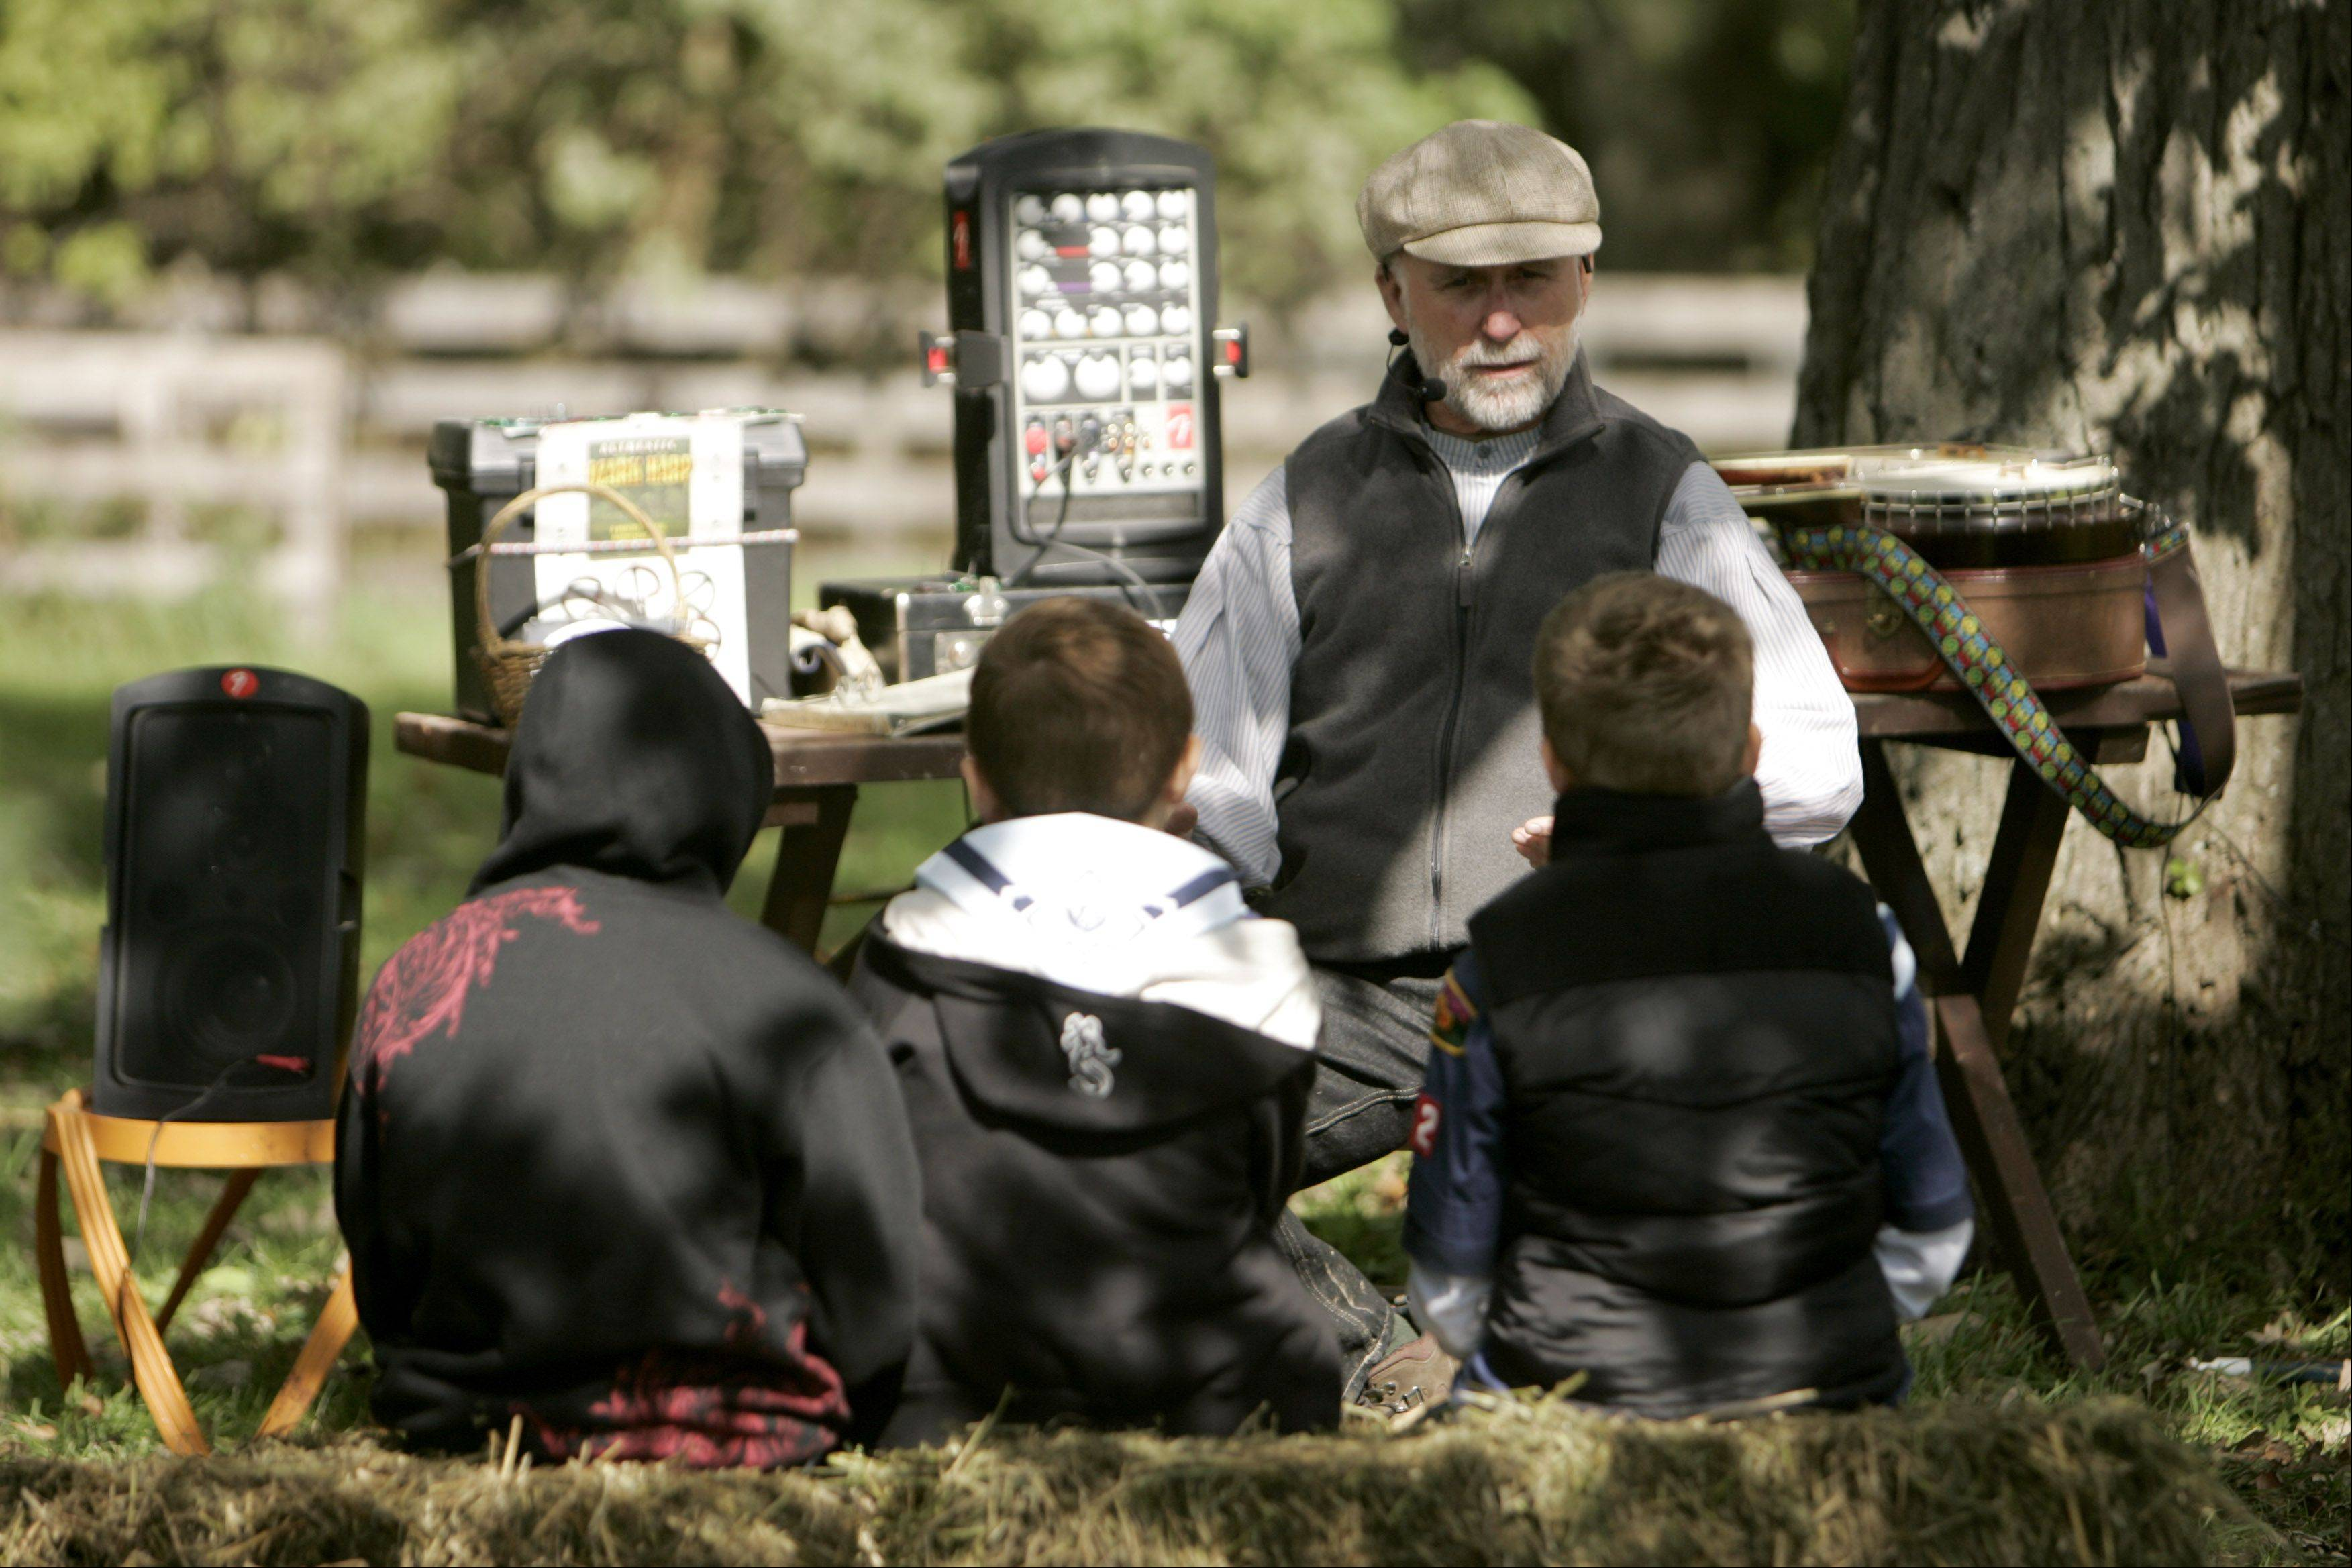 Storyteller Reid Miller of Stoughton, Wis., entertains children during Garfield Farm Museum's annual Harvest Days.